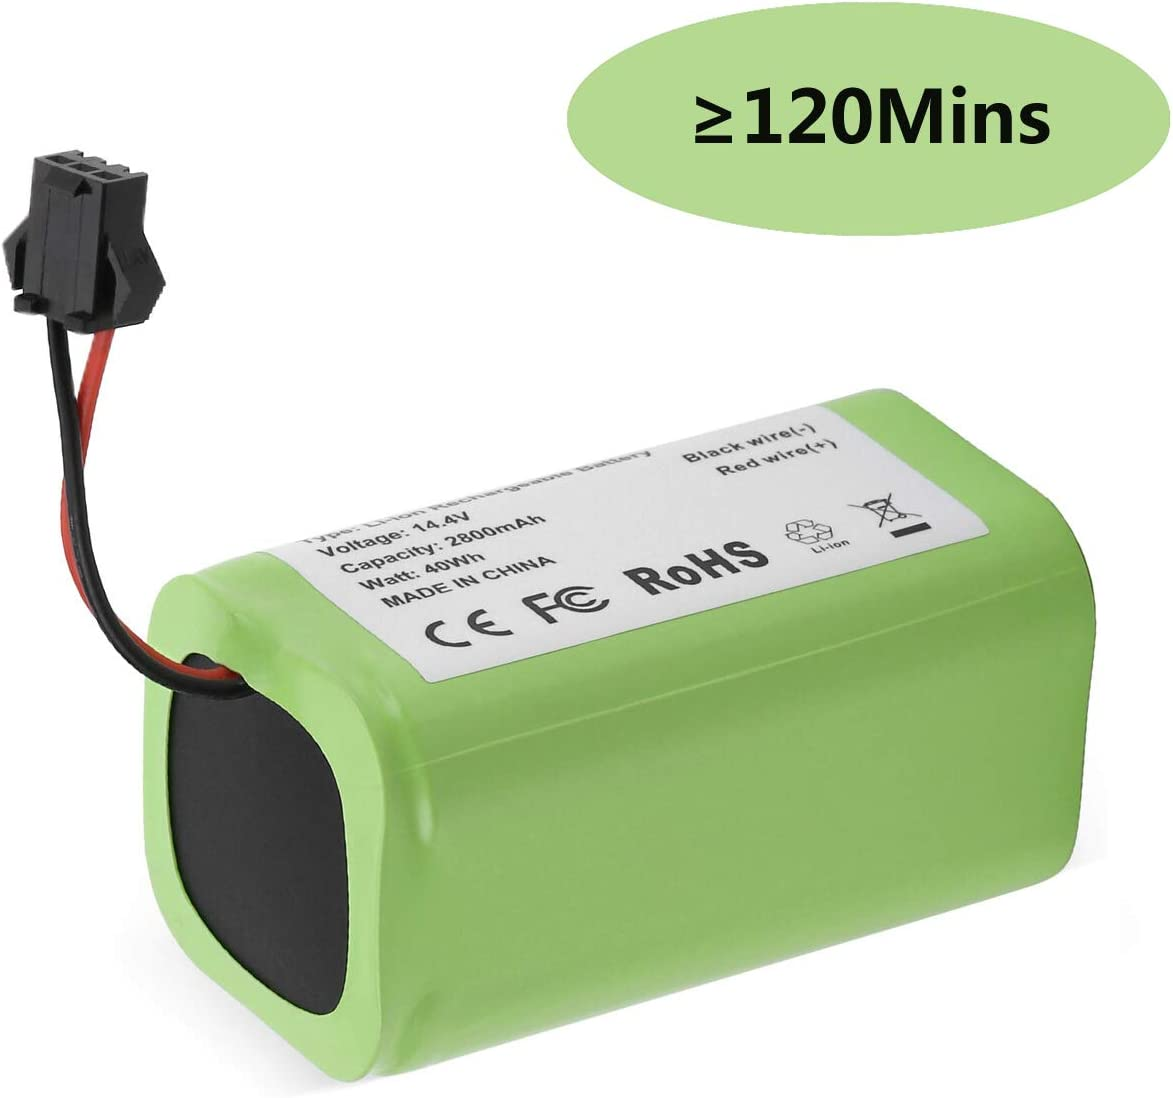 FirstPower 14.4v 2800mAh Replacement Battery - Compatible with Ecovacs Deebot N79 N79S DN622 & Eufy RoboVac 11, 11S, 11S MAX, 12, 15C, 15C MAX, 15T, 30, 30C, 30 MAX, 35C - Cleaned ≥120 Mins